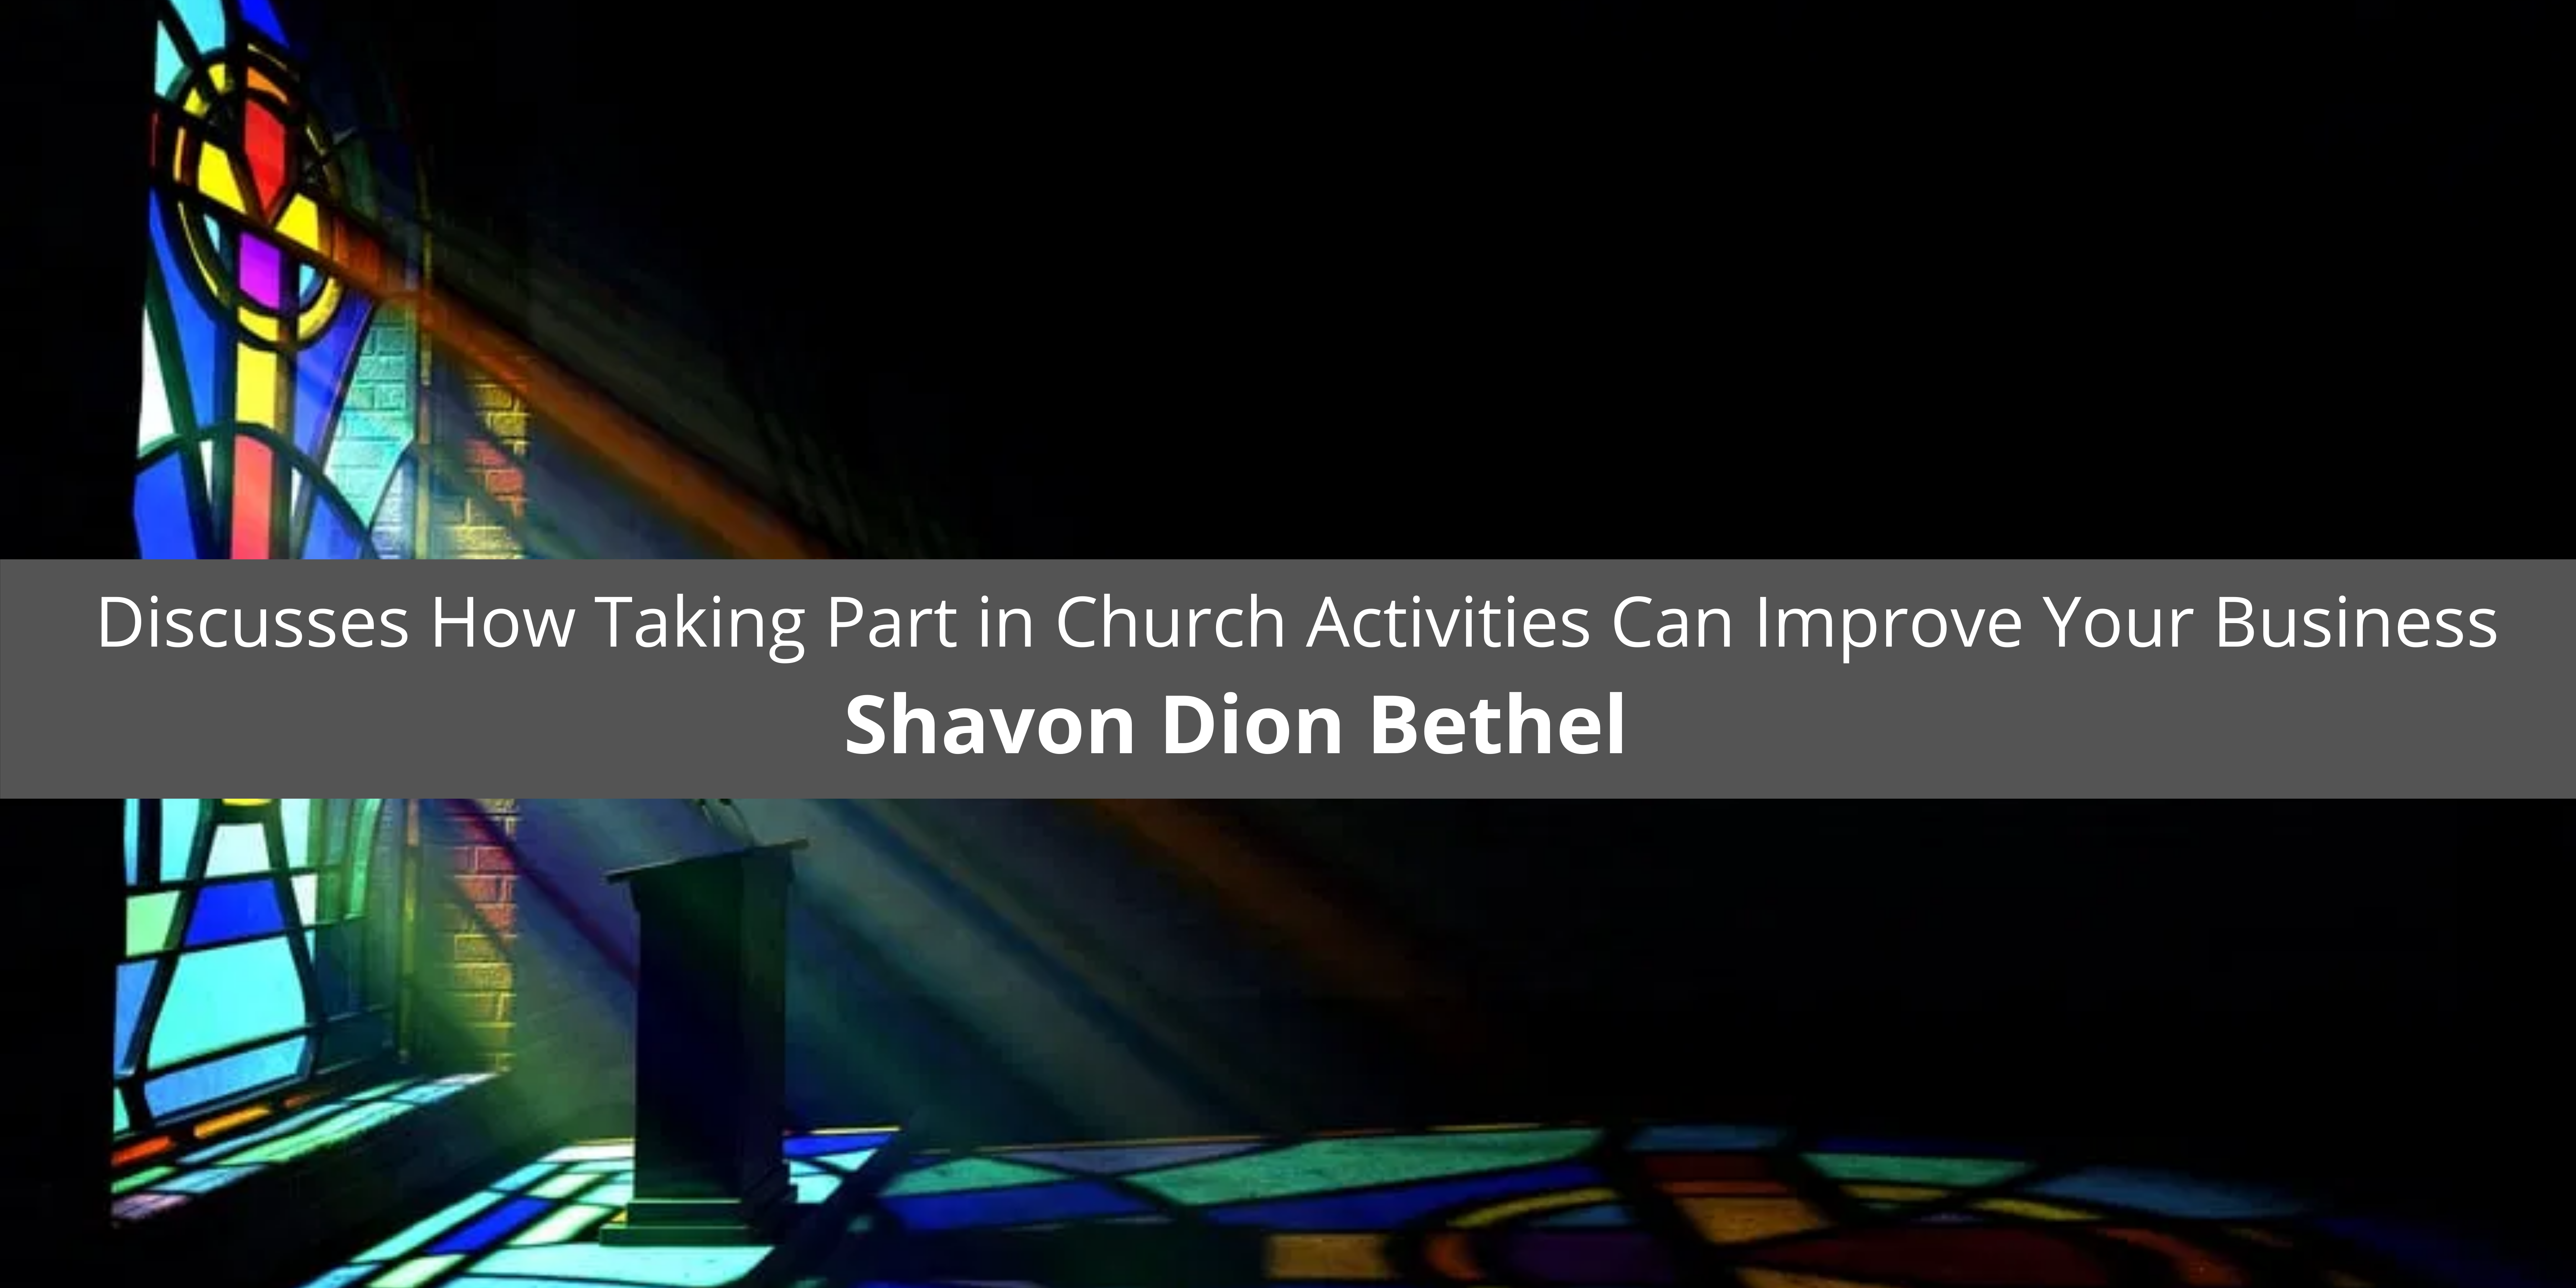 Shavon Dion Bethel Discusses How Taking Part in Church Activities Can Improve Your Business